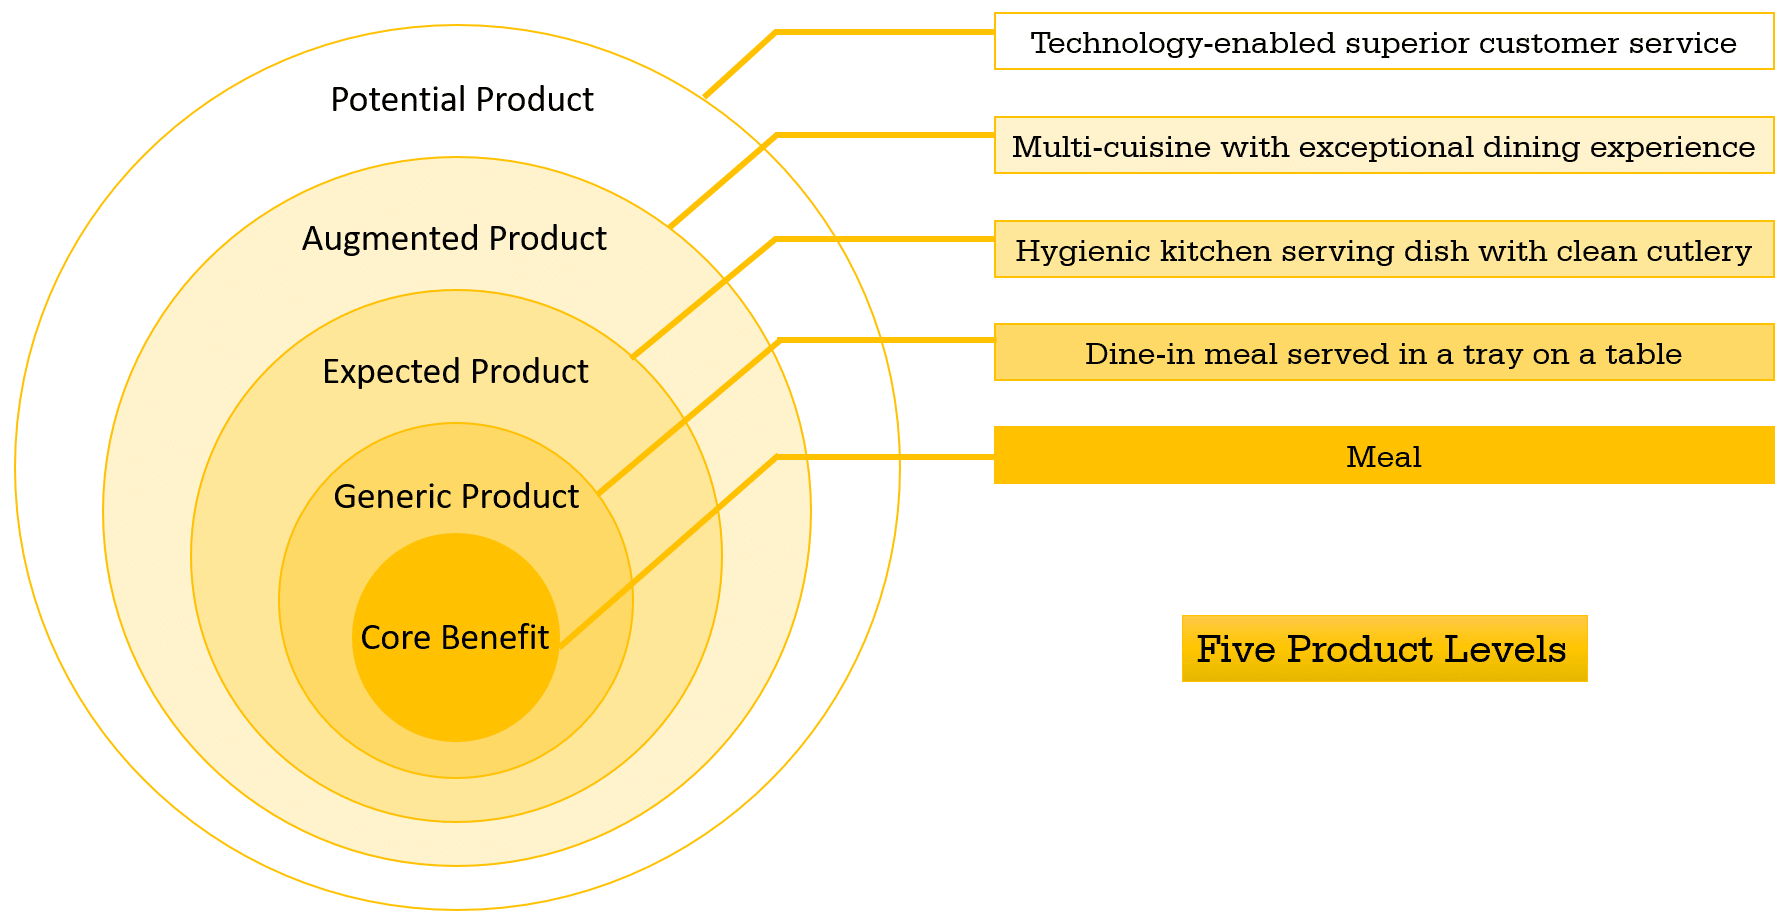 Kotler's Five Product Levels with example